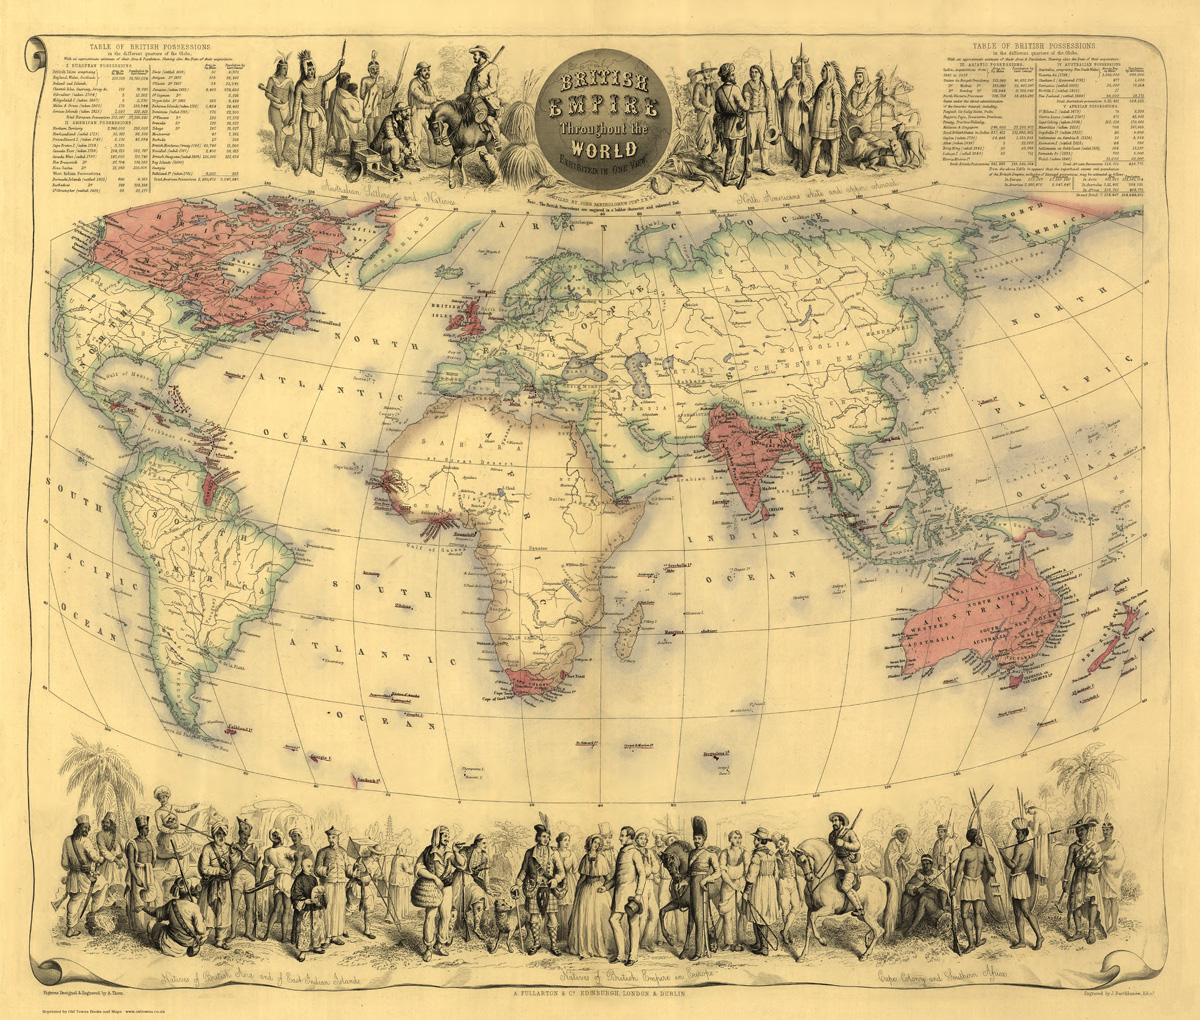 Old Map of the British Empire in1855 by Fullarton  repro vintage